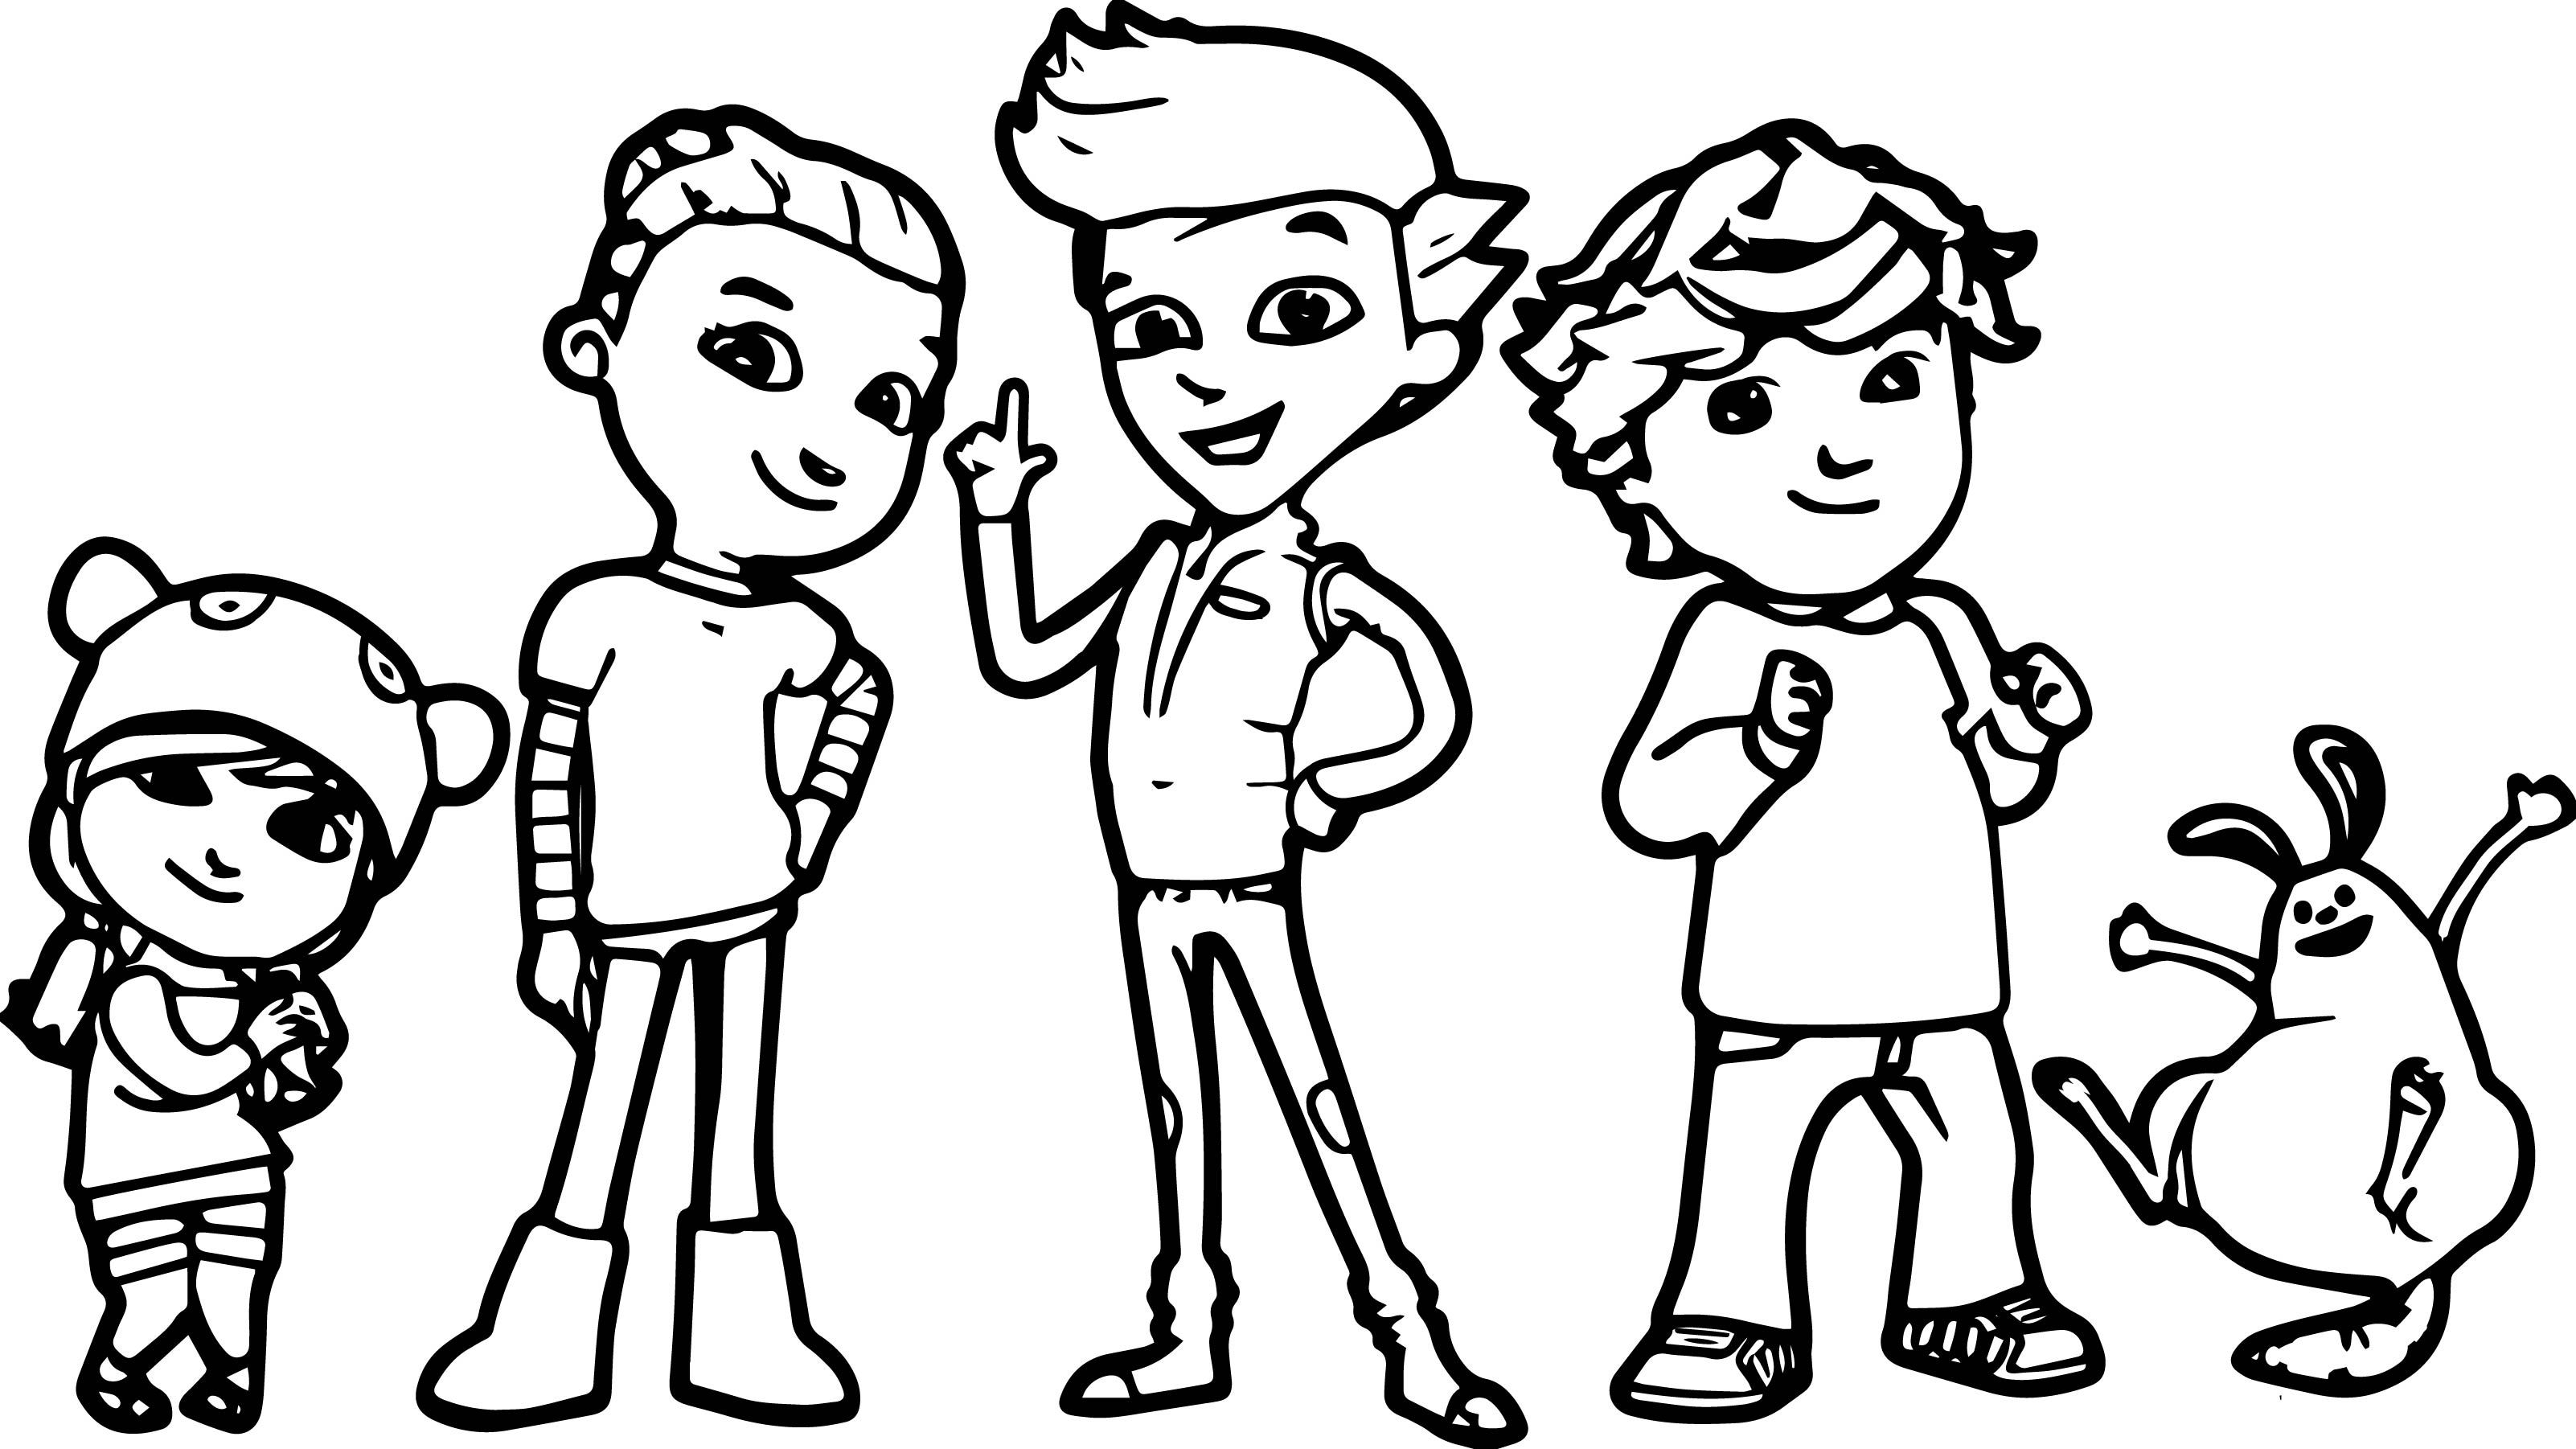 Ready jet go clipart svg library download nice Pbs Kids Ready Jet Go Coloring Page | wecoloringpage ... svg library download